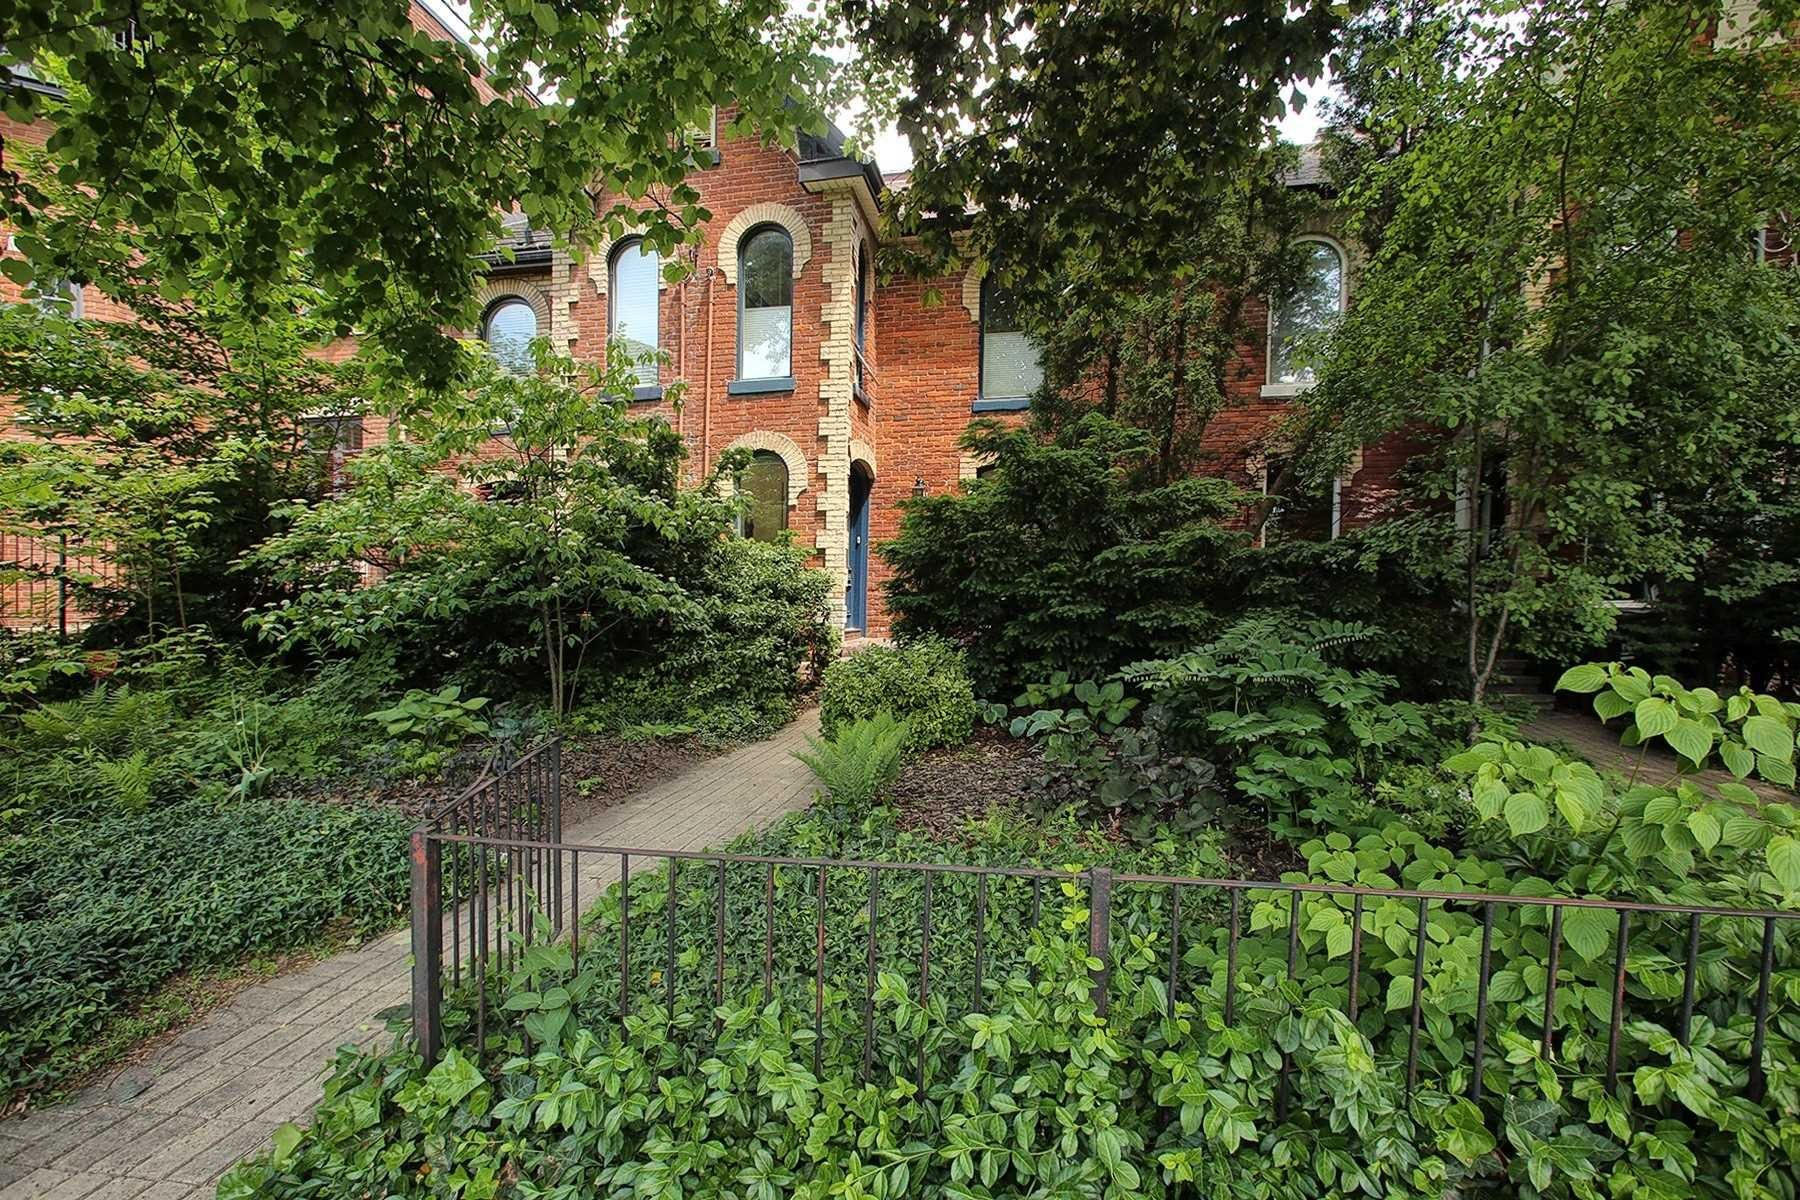 Main Photo: 9 Rose Avenue in Toronto: Cabbagetown-South St. James Town House (3-Storey) for sale (Toronto C08)  : MLS®# C5264079